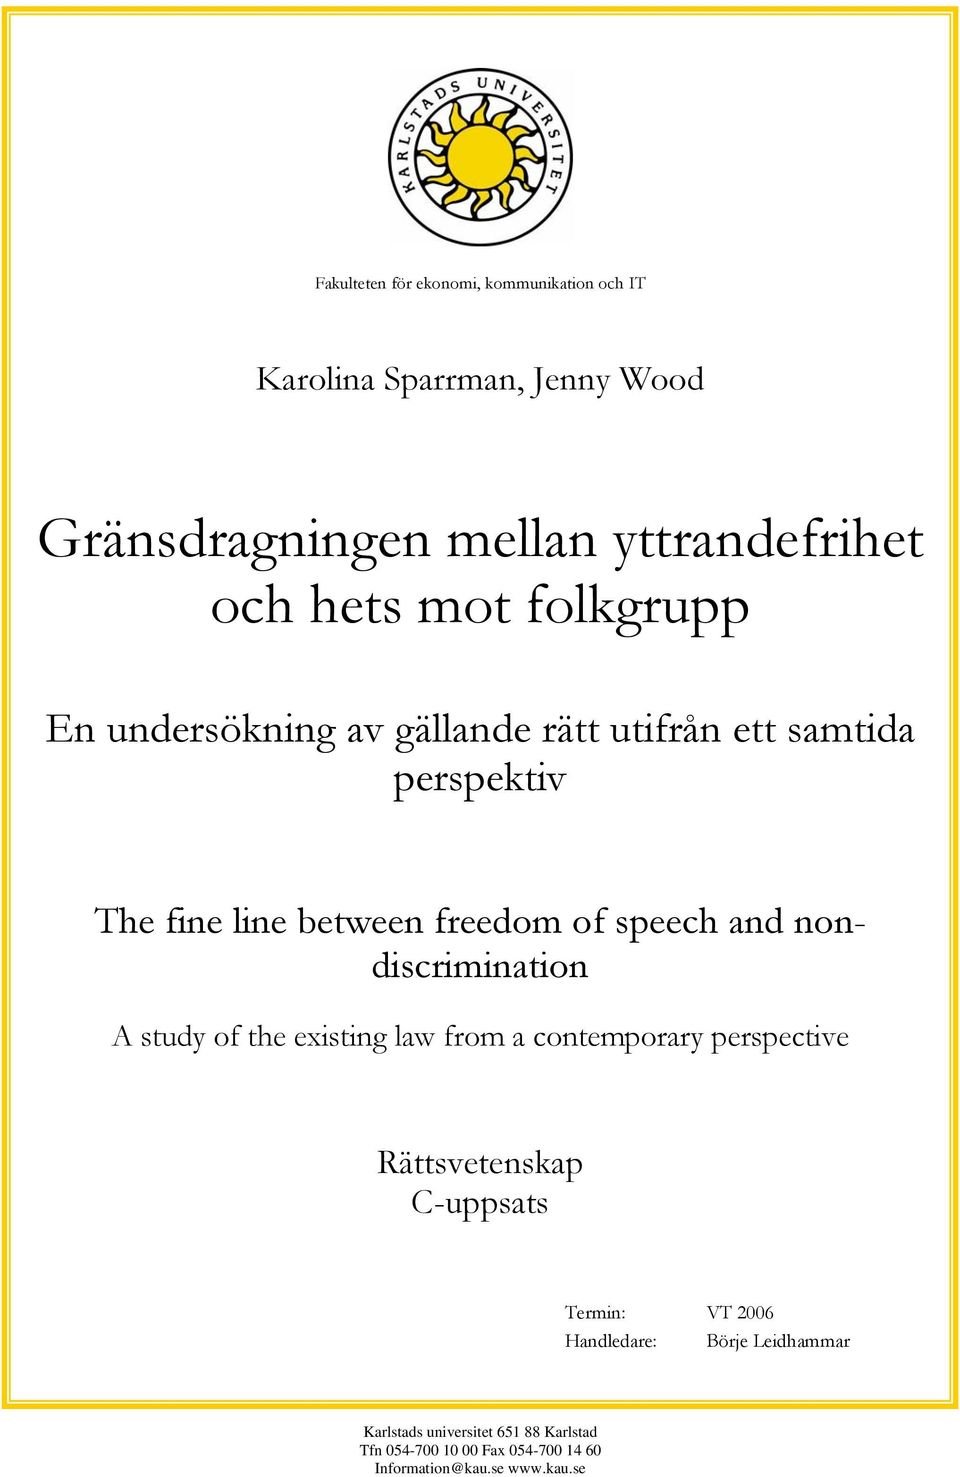 nondiscrimination A study of the existing law from a contemporary perspective Rättsvetenskap C-uppsats Termin: VT 2006